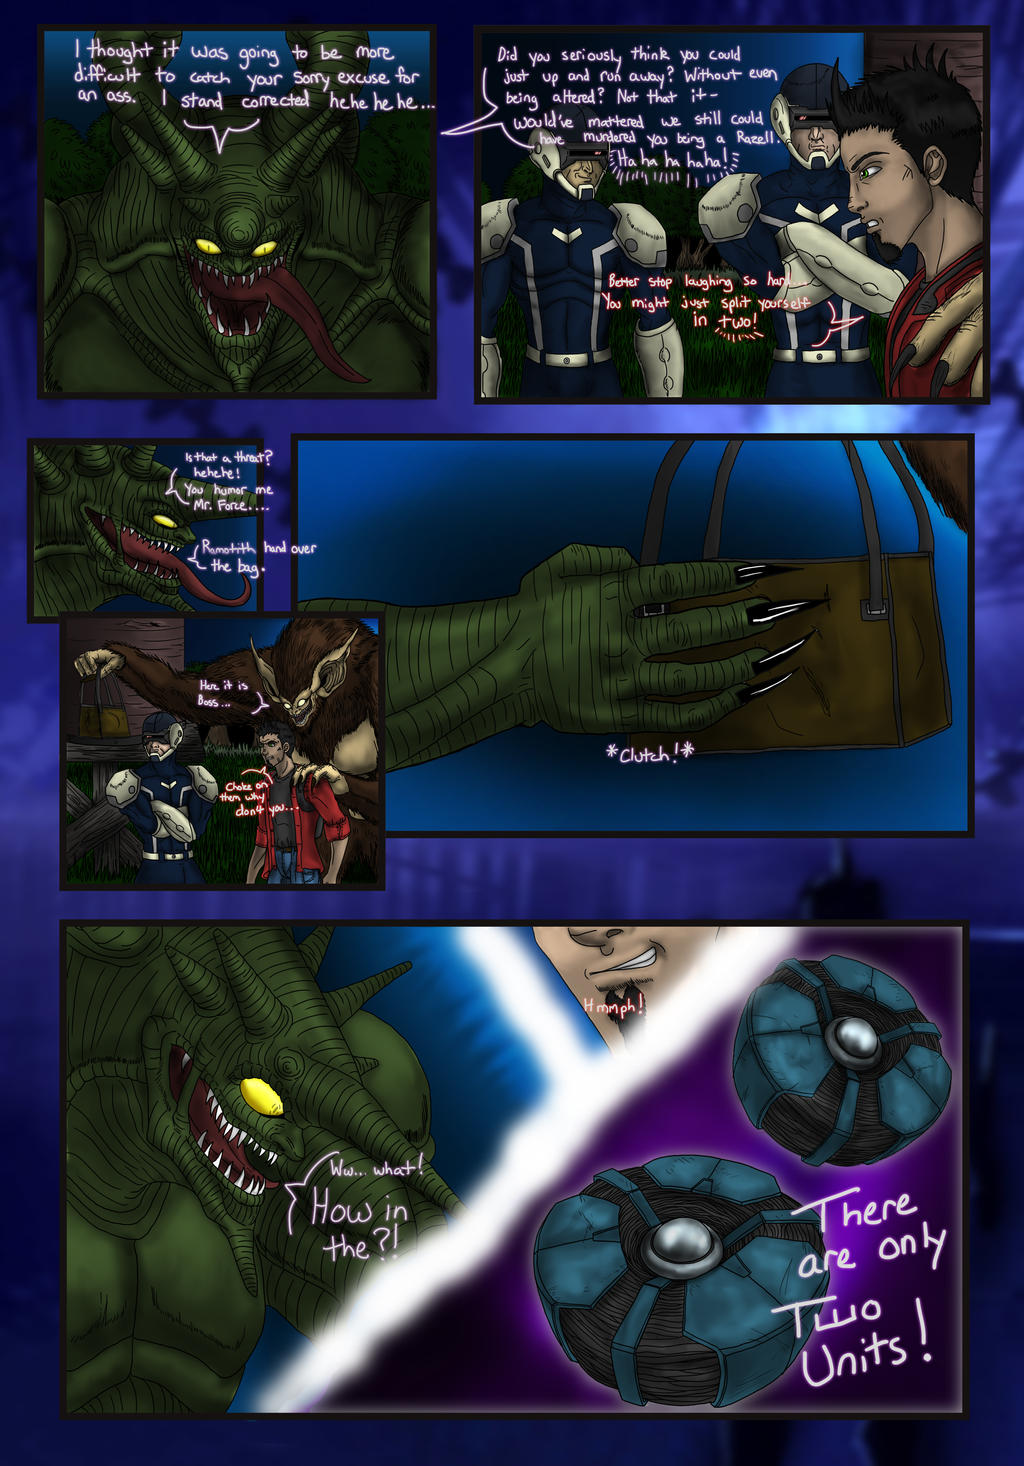 the_guyver_pd_1x5_by_guyver89-d4m3d2z.jpg